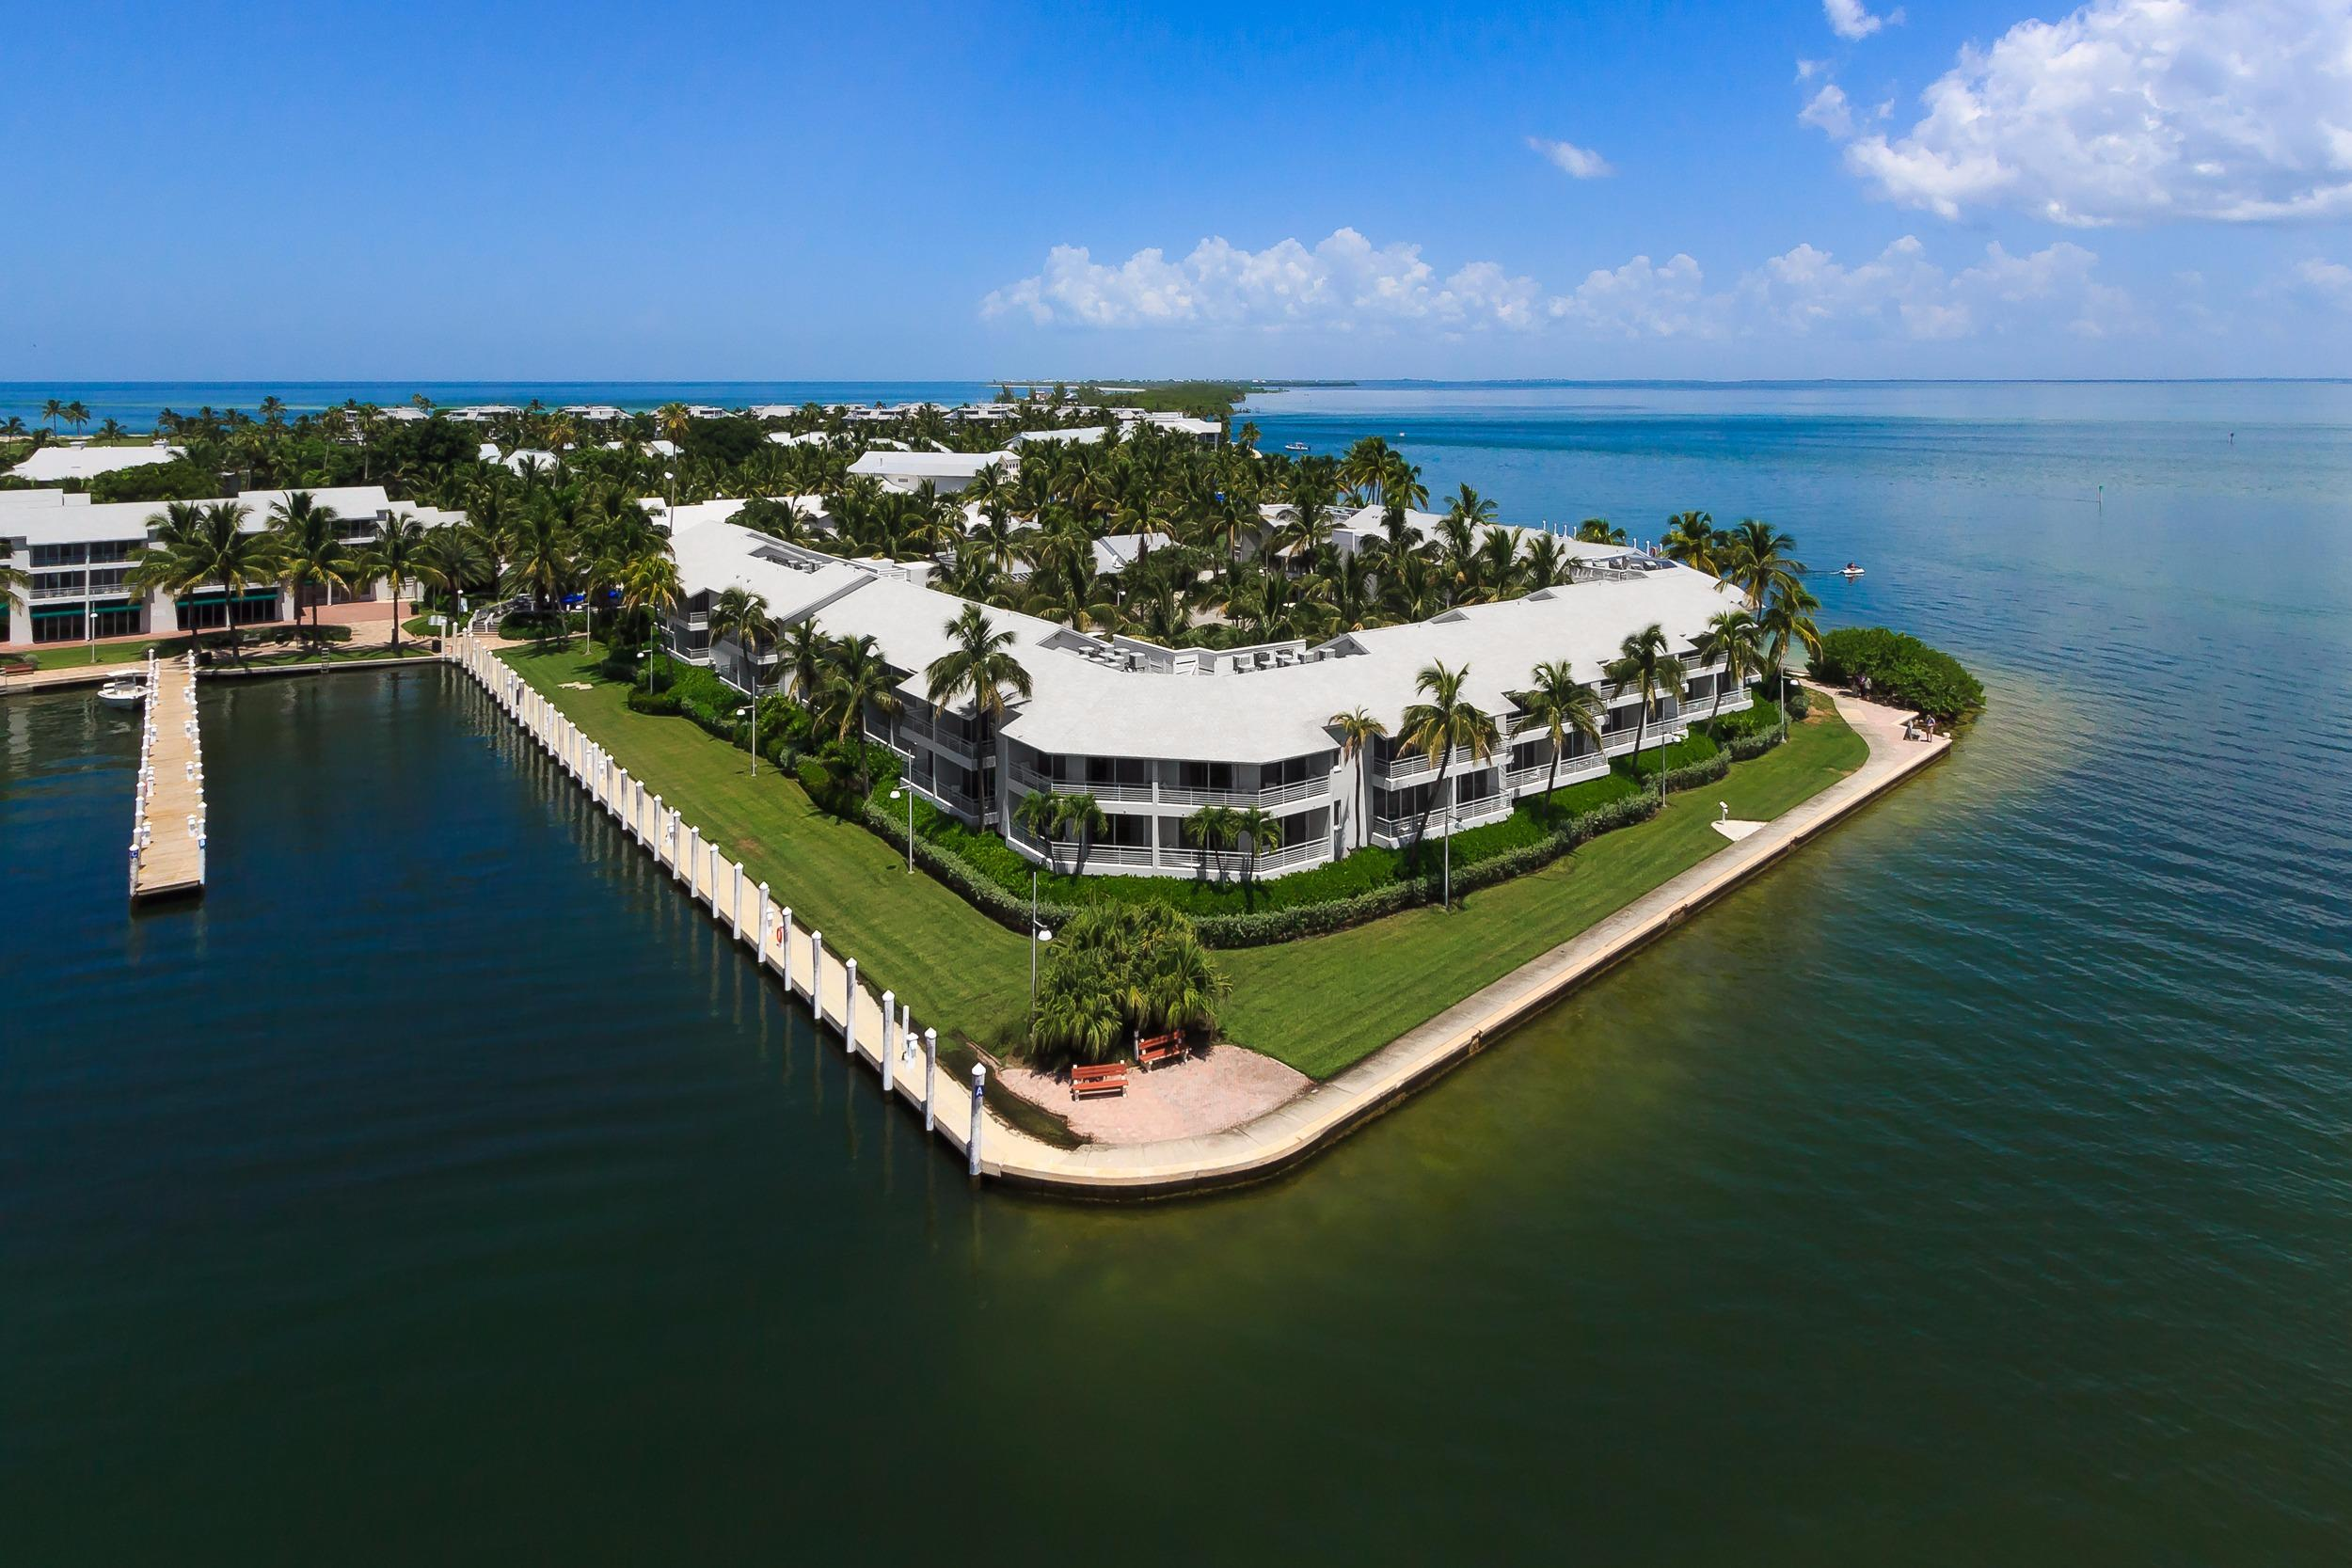 Coupons for South Seas Island Resort - 15% off - Oct 15% off Get Deal 7 valid South Seas Island Resort promo codes & coupon codes are available now. Please check our free and complete lists of South Seas Island Resort coupons for Oct and get instant savings right now.